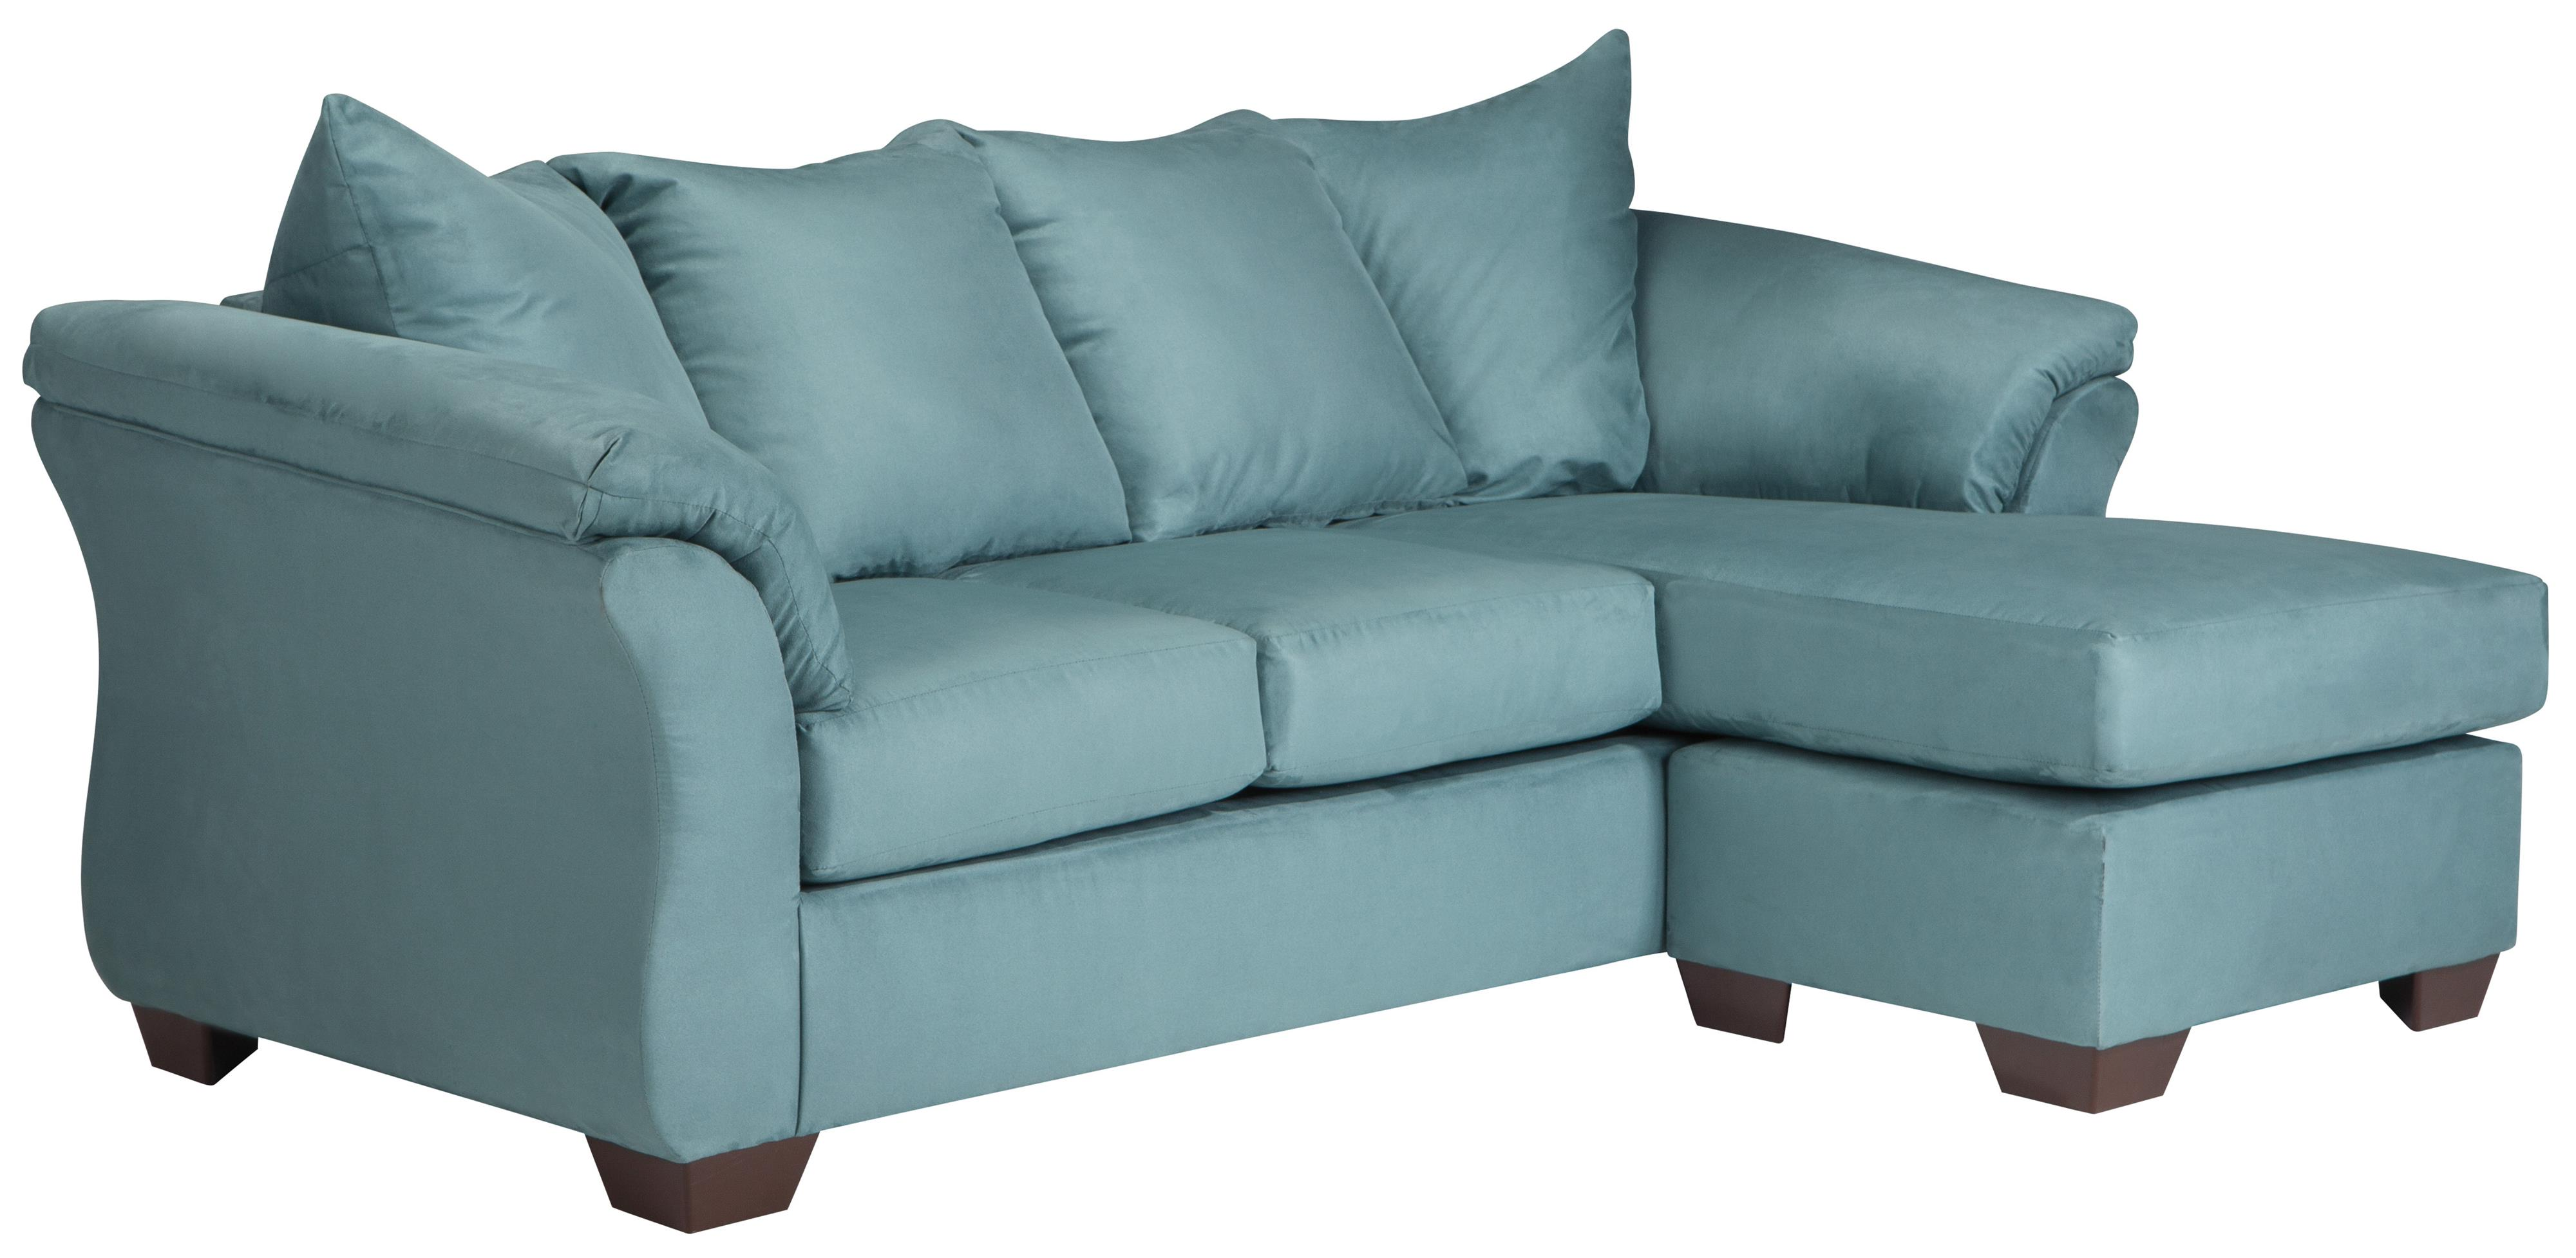 Darcy - Sky Sofa Chaise by Ashley at Morris Home